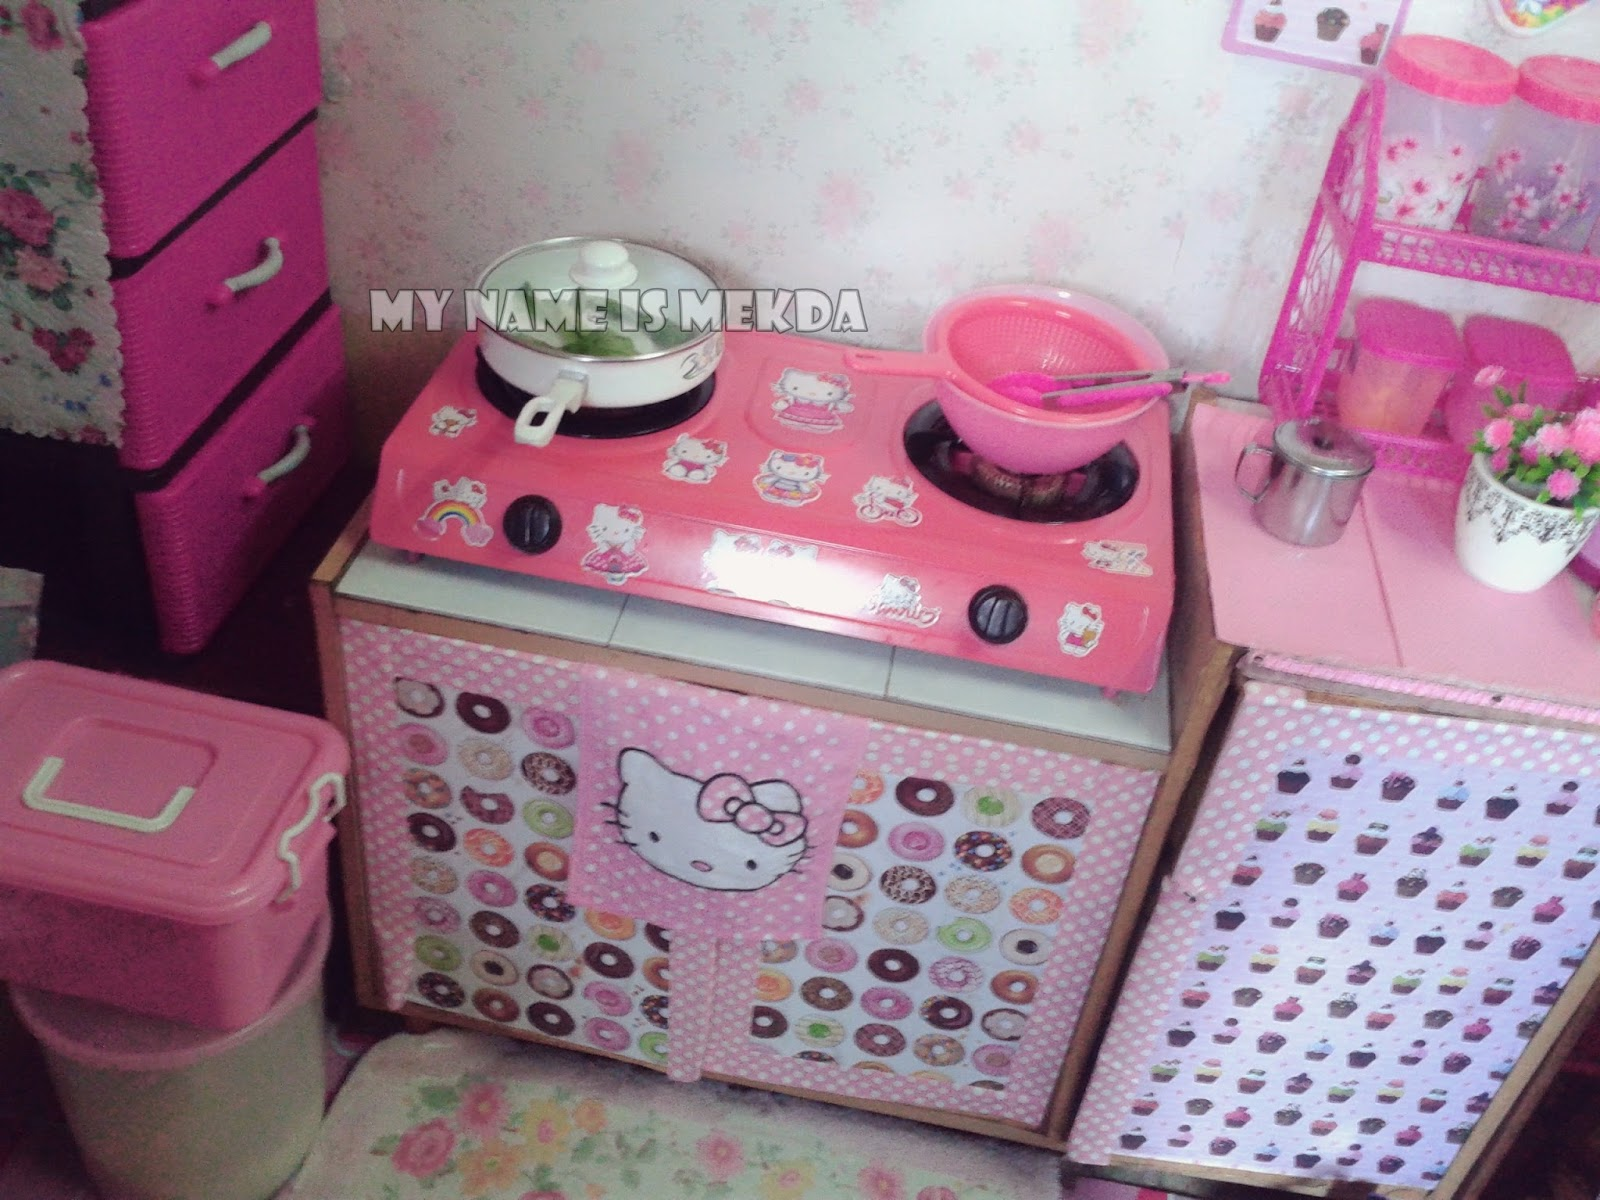 My Name Is Mekda 169 Deko Dapur Bajet Tema Pink